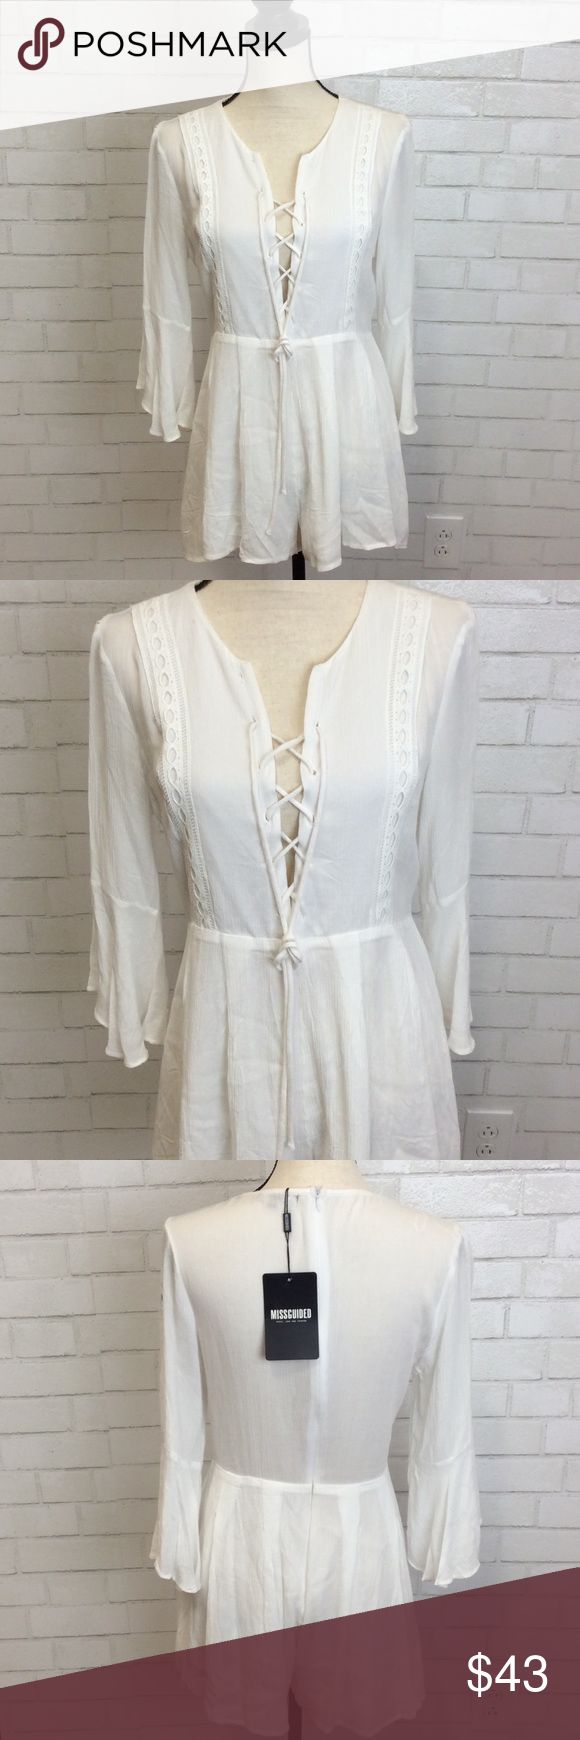 """MISGUIDED Lace-up White Bell Sleeve Romper This romper has a sexy or modest option. Lace up or keep loose! Romper has feminine lace on front and its arms. Very pretty modest bell sleeves. Size 8. 100% Polyester. Measurements: Shoulders: approximately 16"""" Top to bottom hem approximately 26"""" Sleeves reach approximately 16"""" at longest point of sleeve Missguided Pants Jumpsuits & Rompers"""